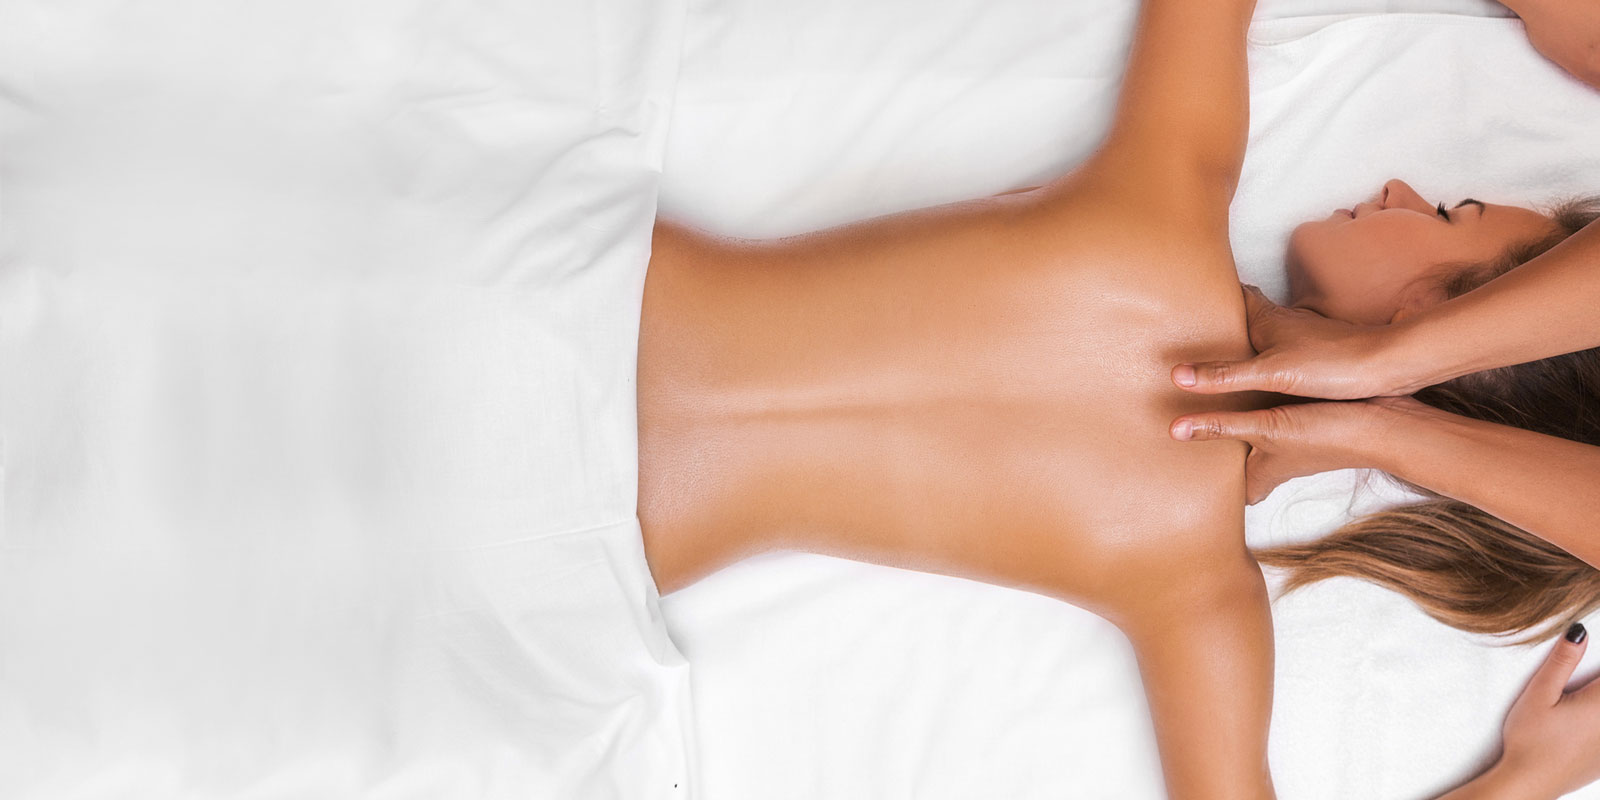 If You're Looking for the Perfect Massage in McAllen, Then Avalon Has What You Need!